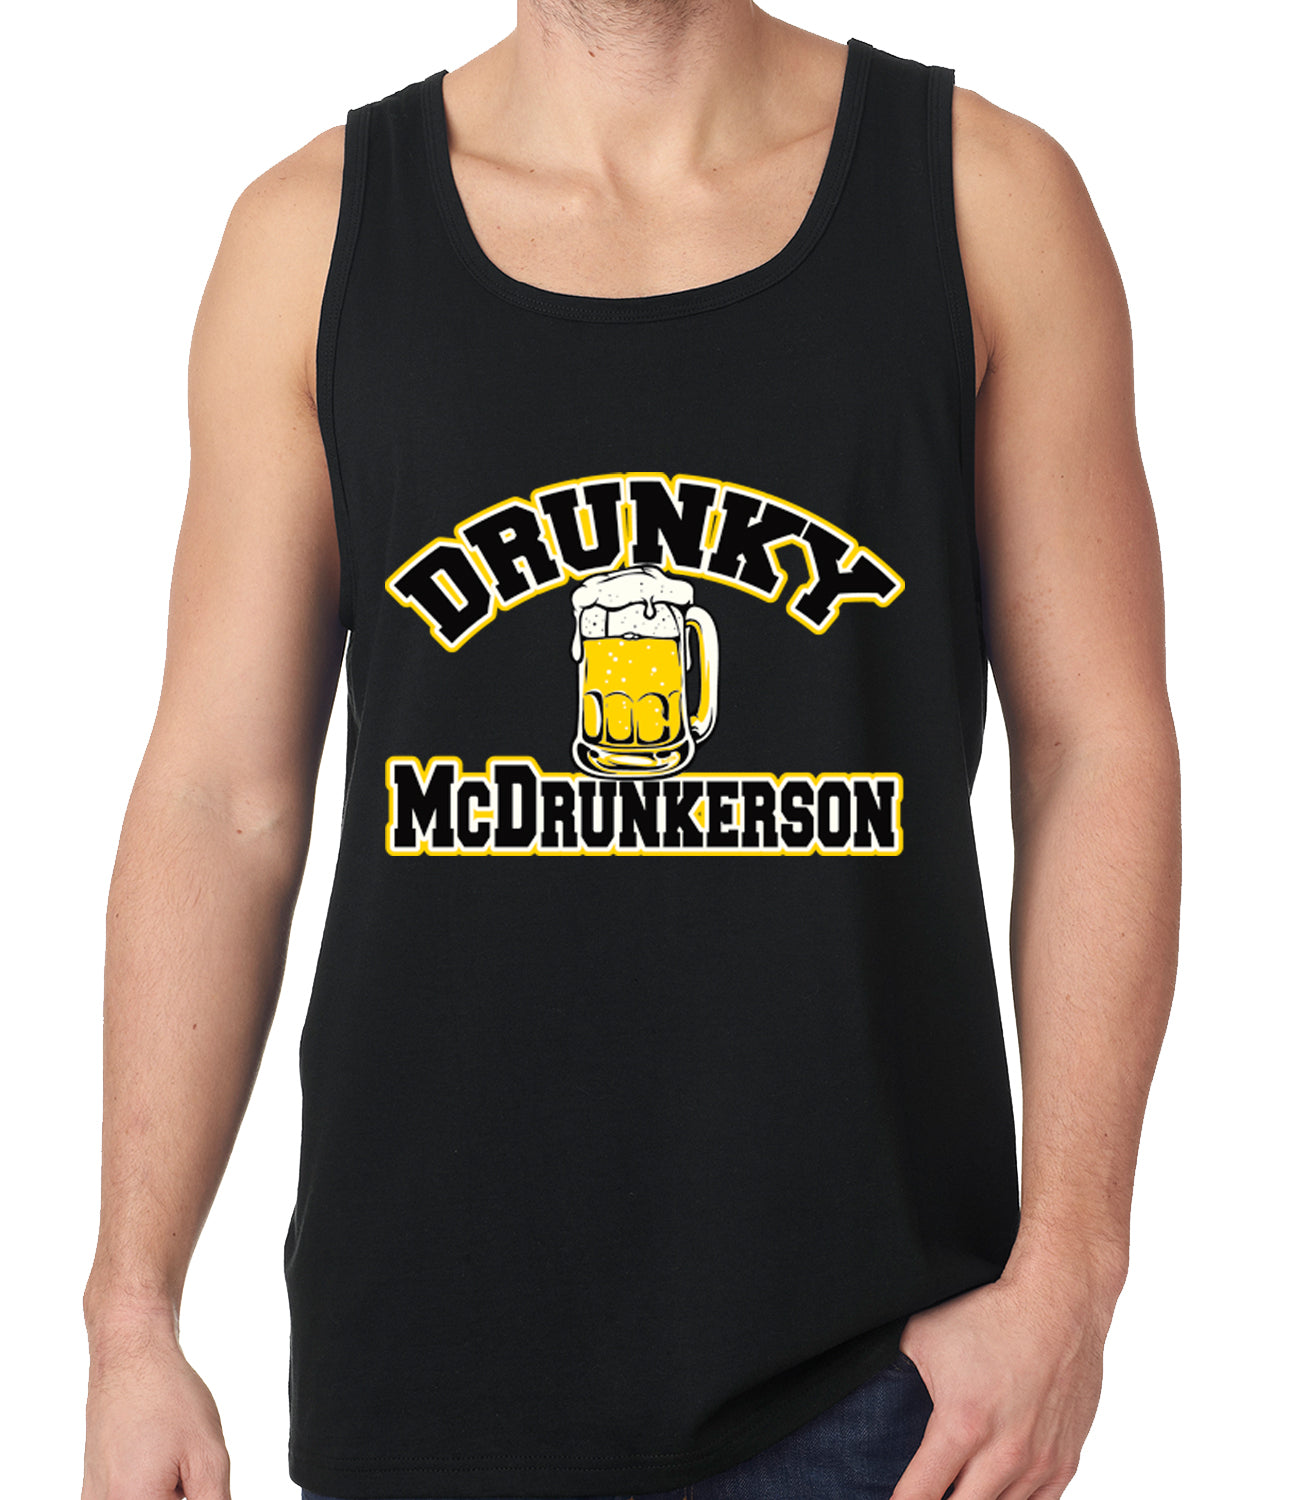 Drunky McDrunkerson Funny Tank Top